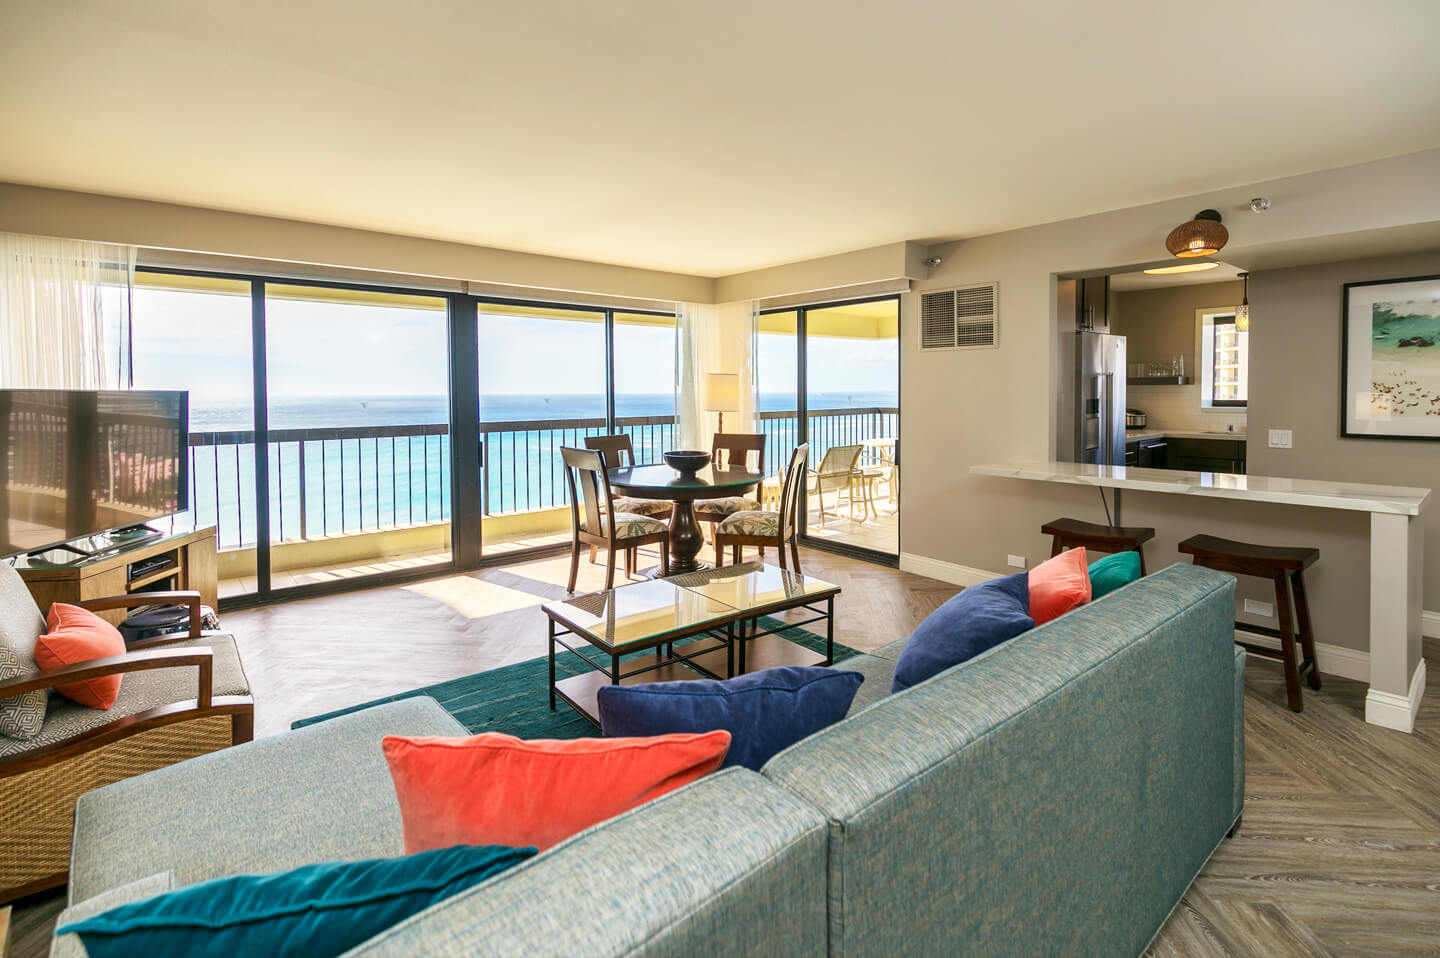 Waikiki Condos The Residences At Waikiki Beach Tower Aqua Aston Hotels